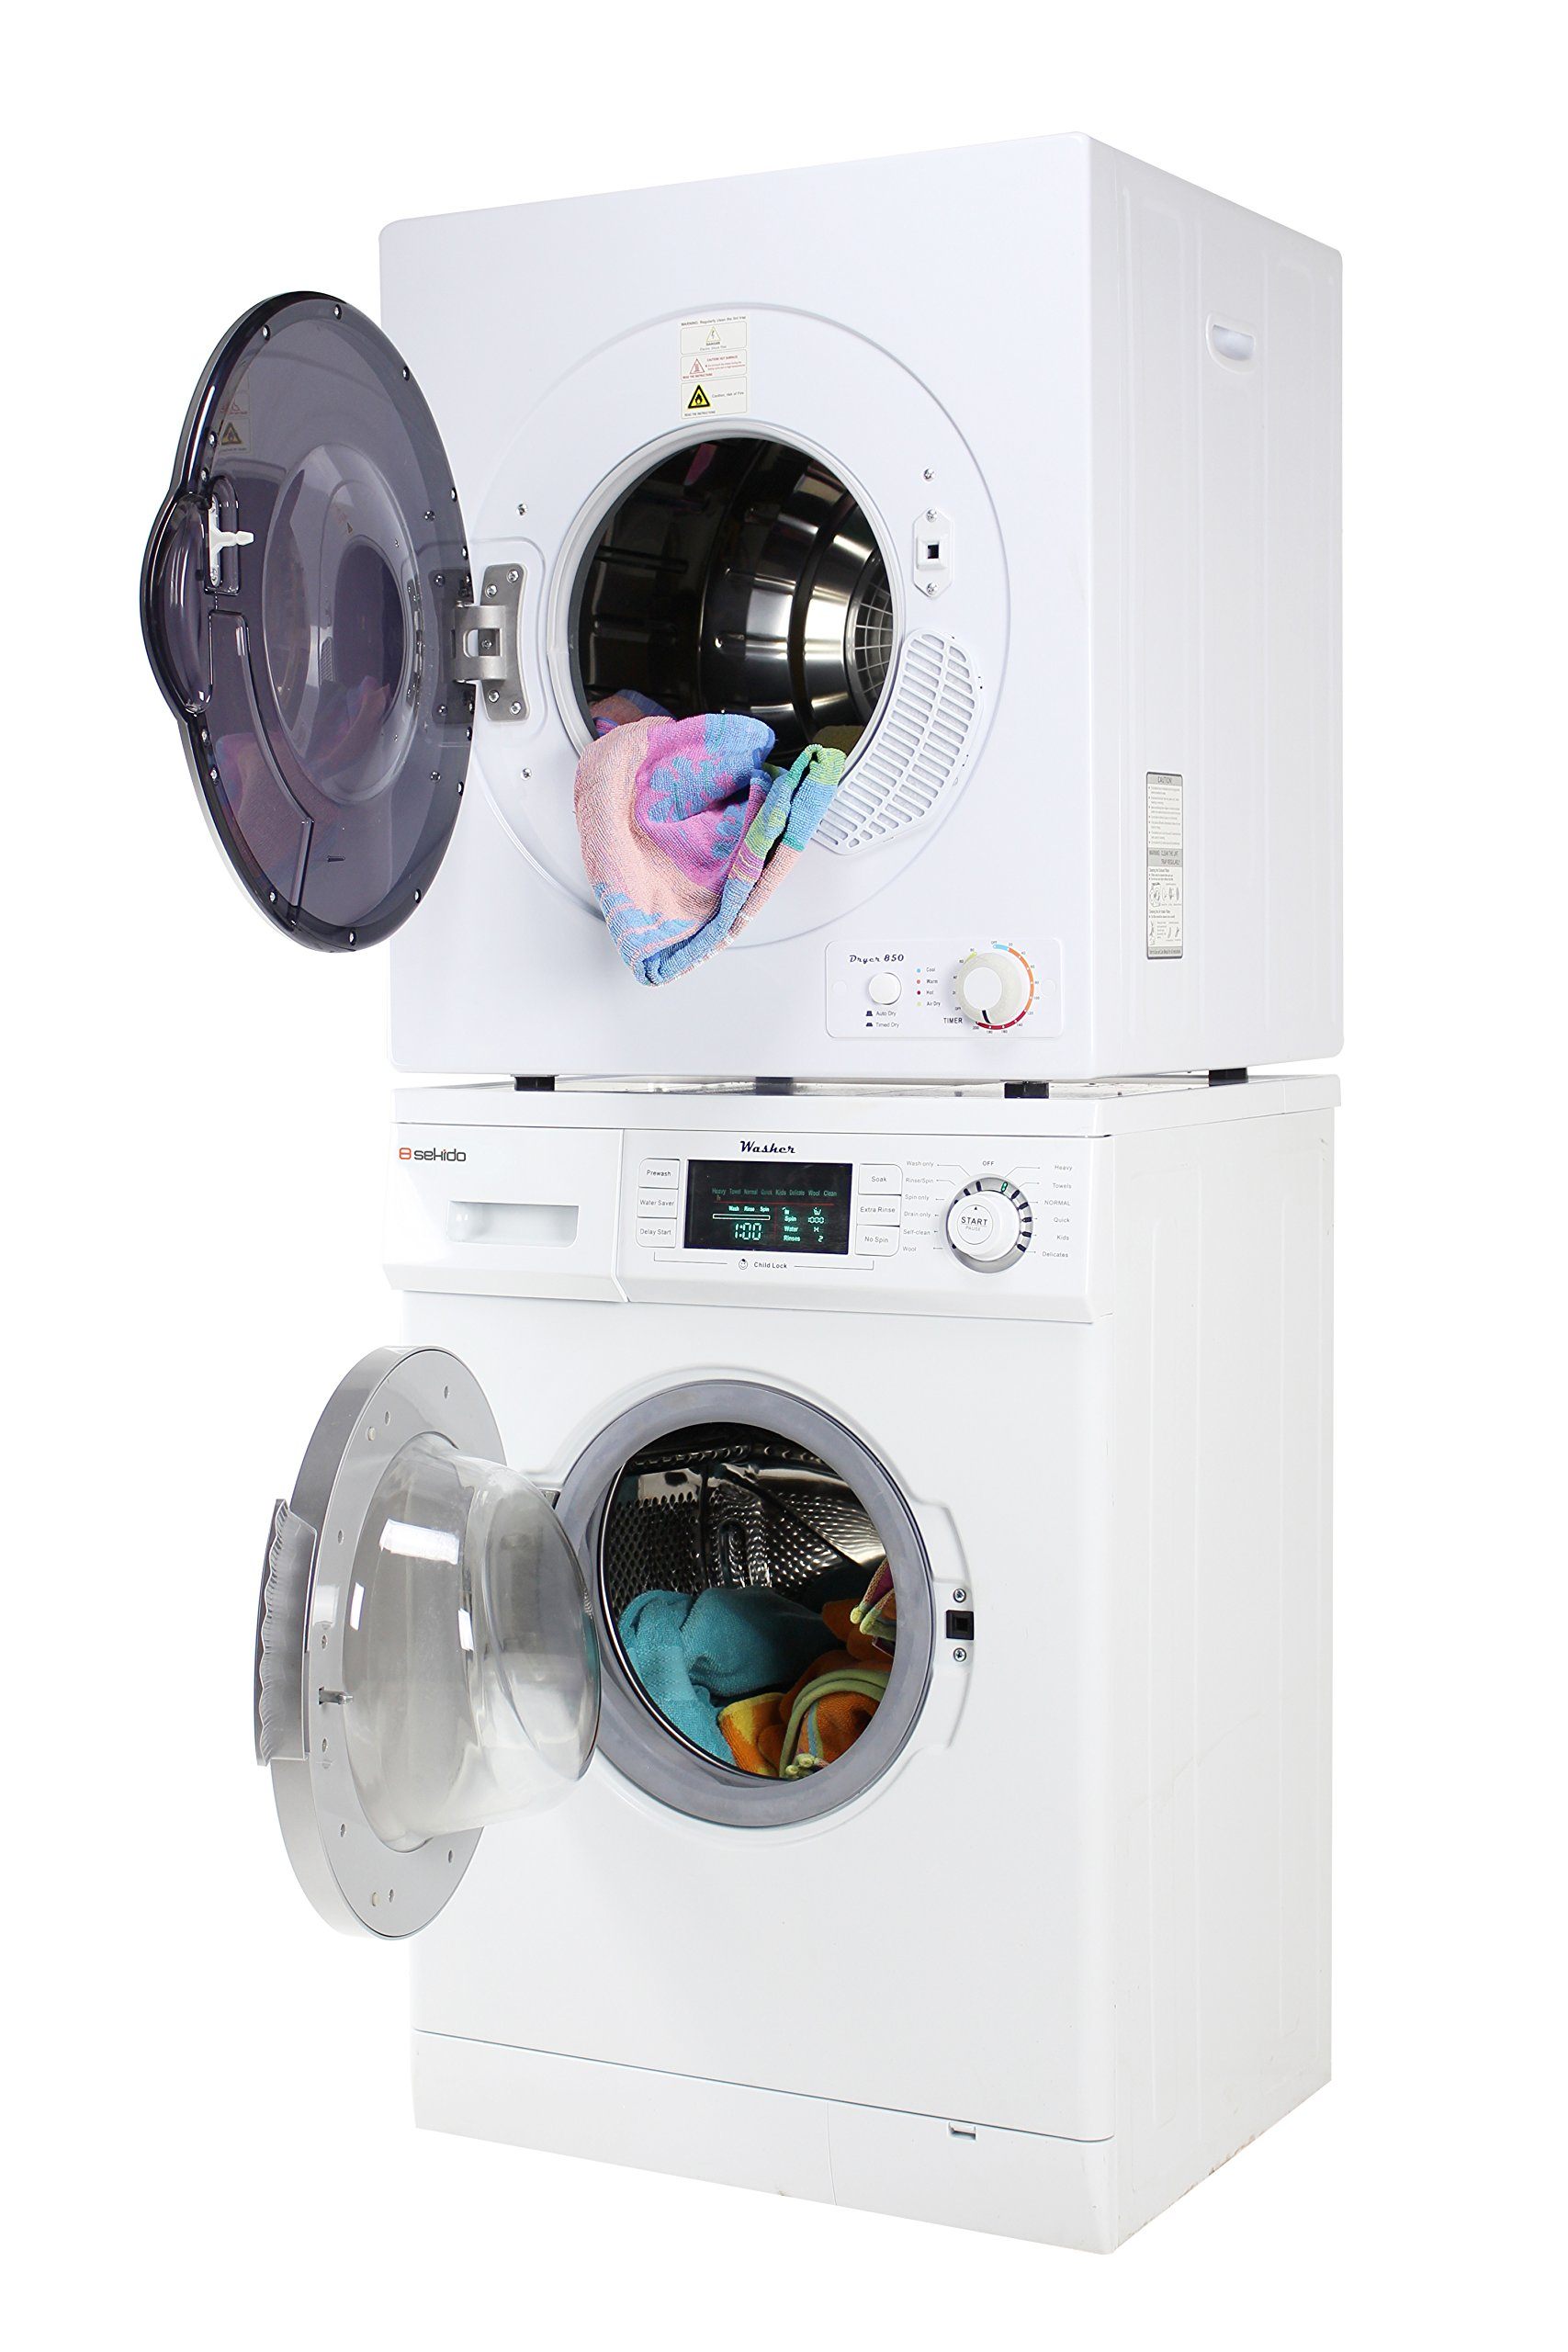 Sekido Super Washer SK 824 and Electric Venting Dryer SK 850 Set of the latest models along with 13lb load capacity very much user friendly with Delay Start Option